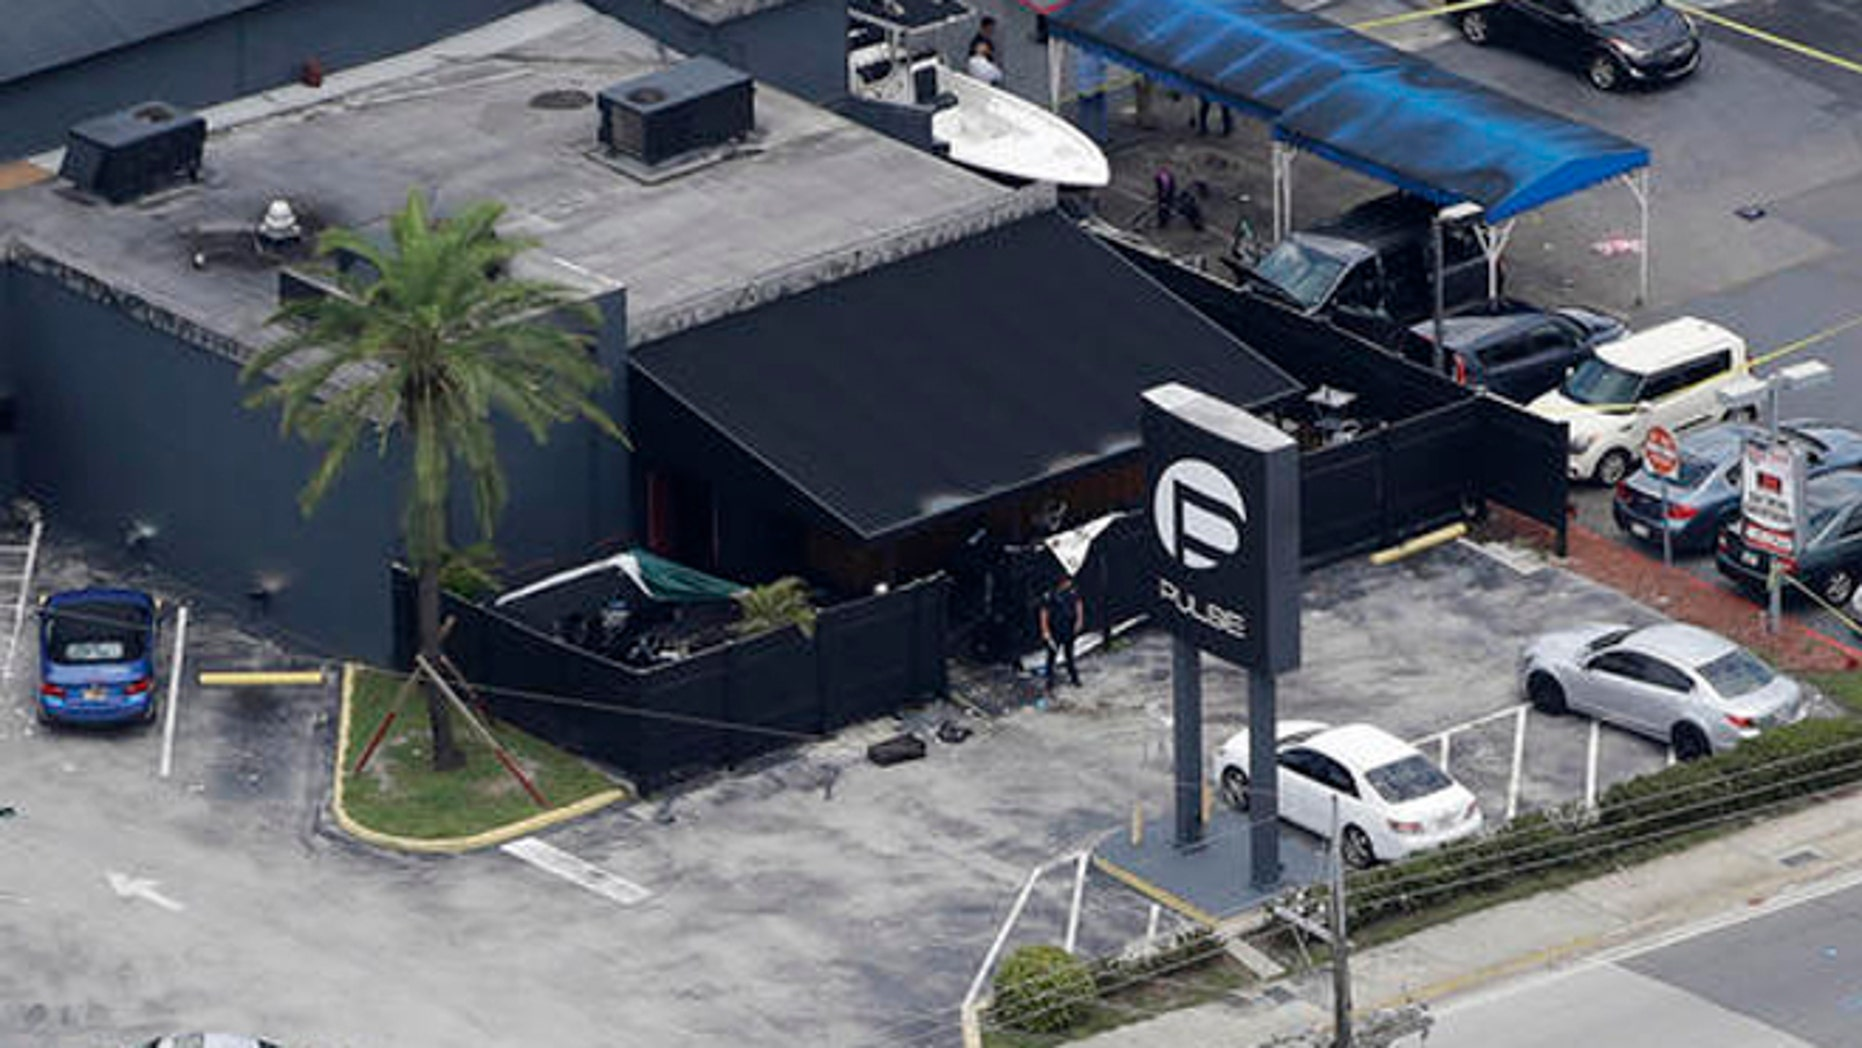 Law enforcement officials work at the Pulse gay nightclub in Orlando, Fla., in June following the mass shooting. (AP)